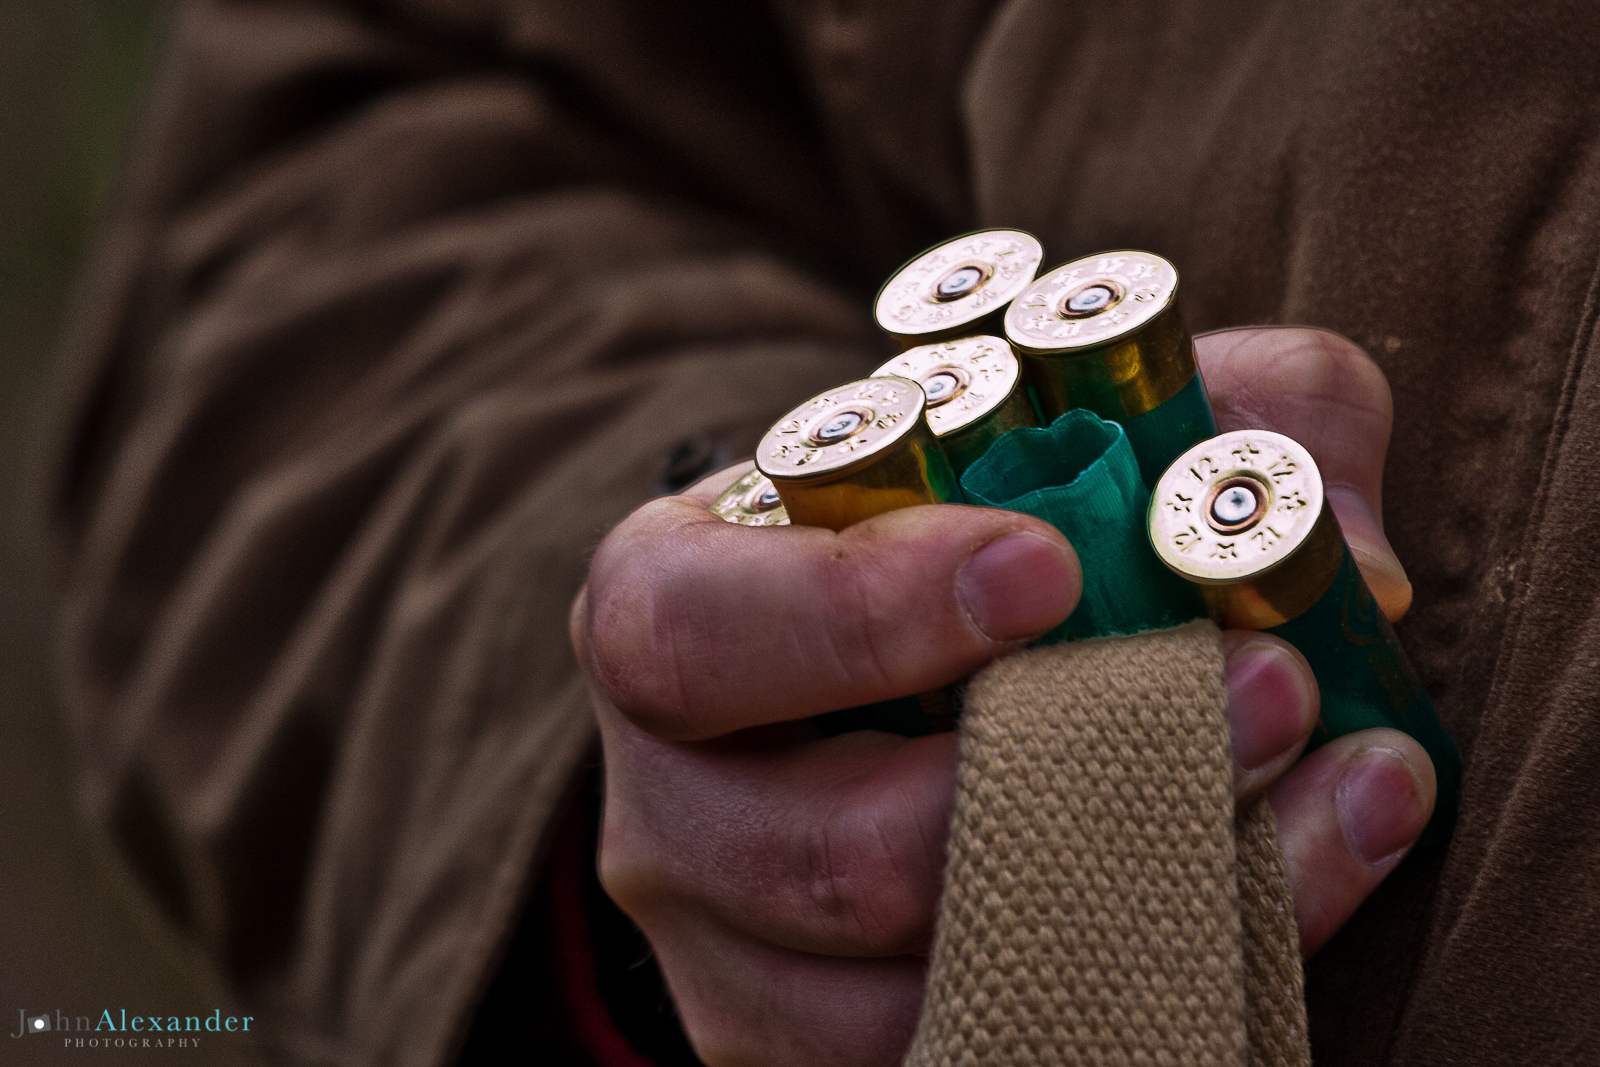 Spent shotgun cartridges in a hand on a pheasant shoot in england. Having been picked up after a drive